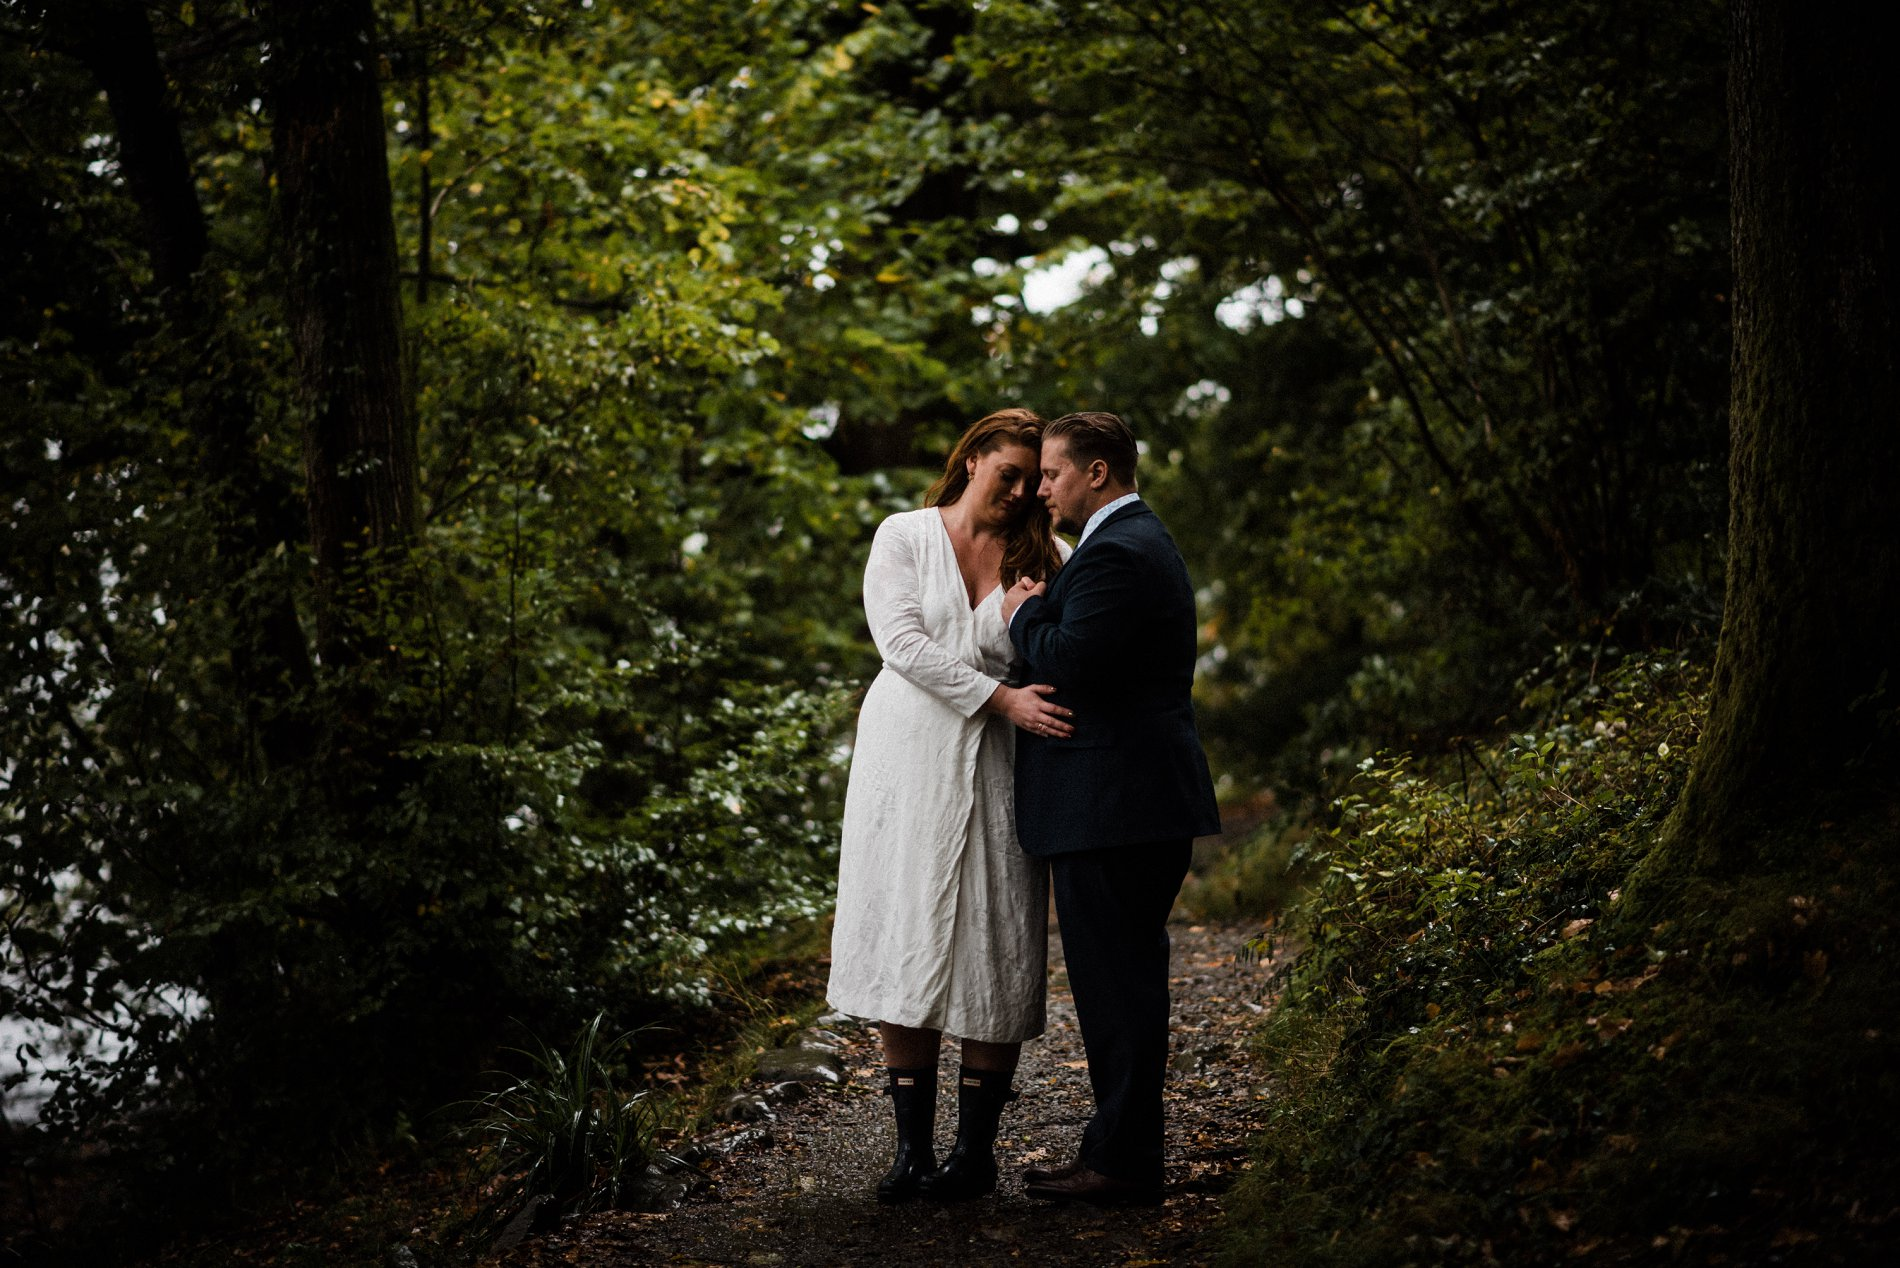 An Elopement Wedding at The Gilpin (c) Dominic Lemoine Photography (78)